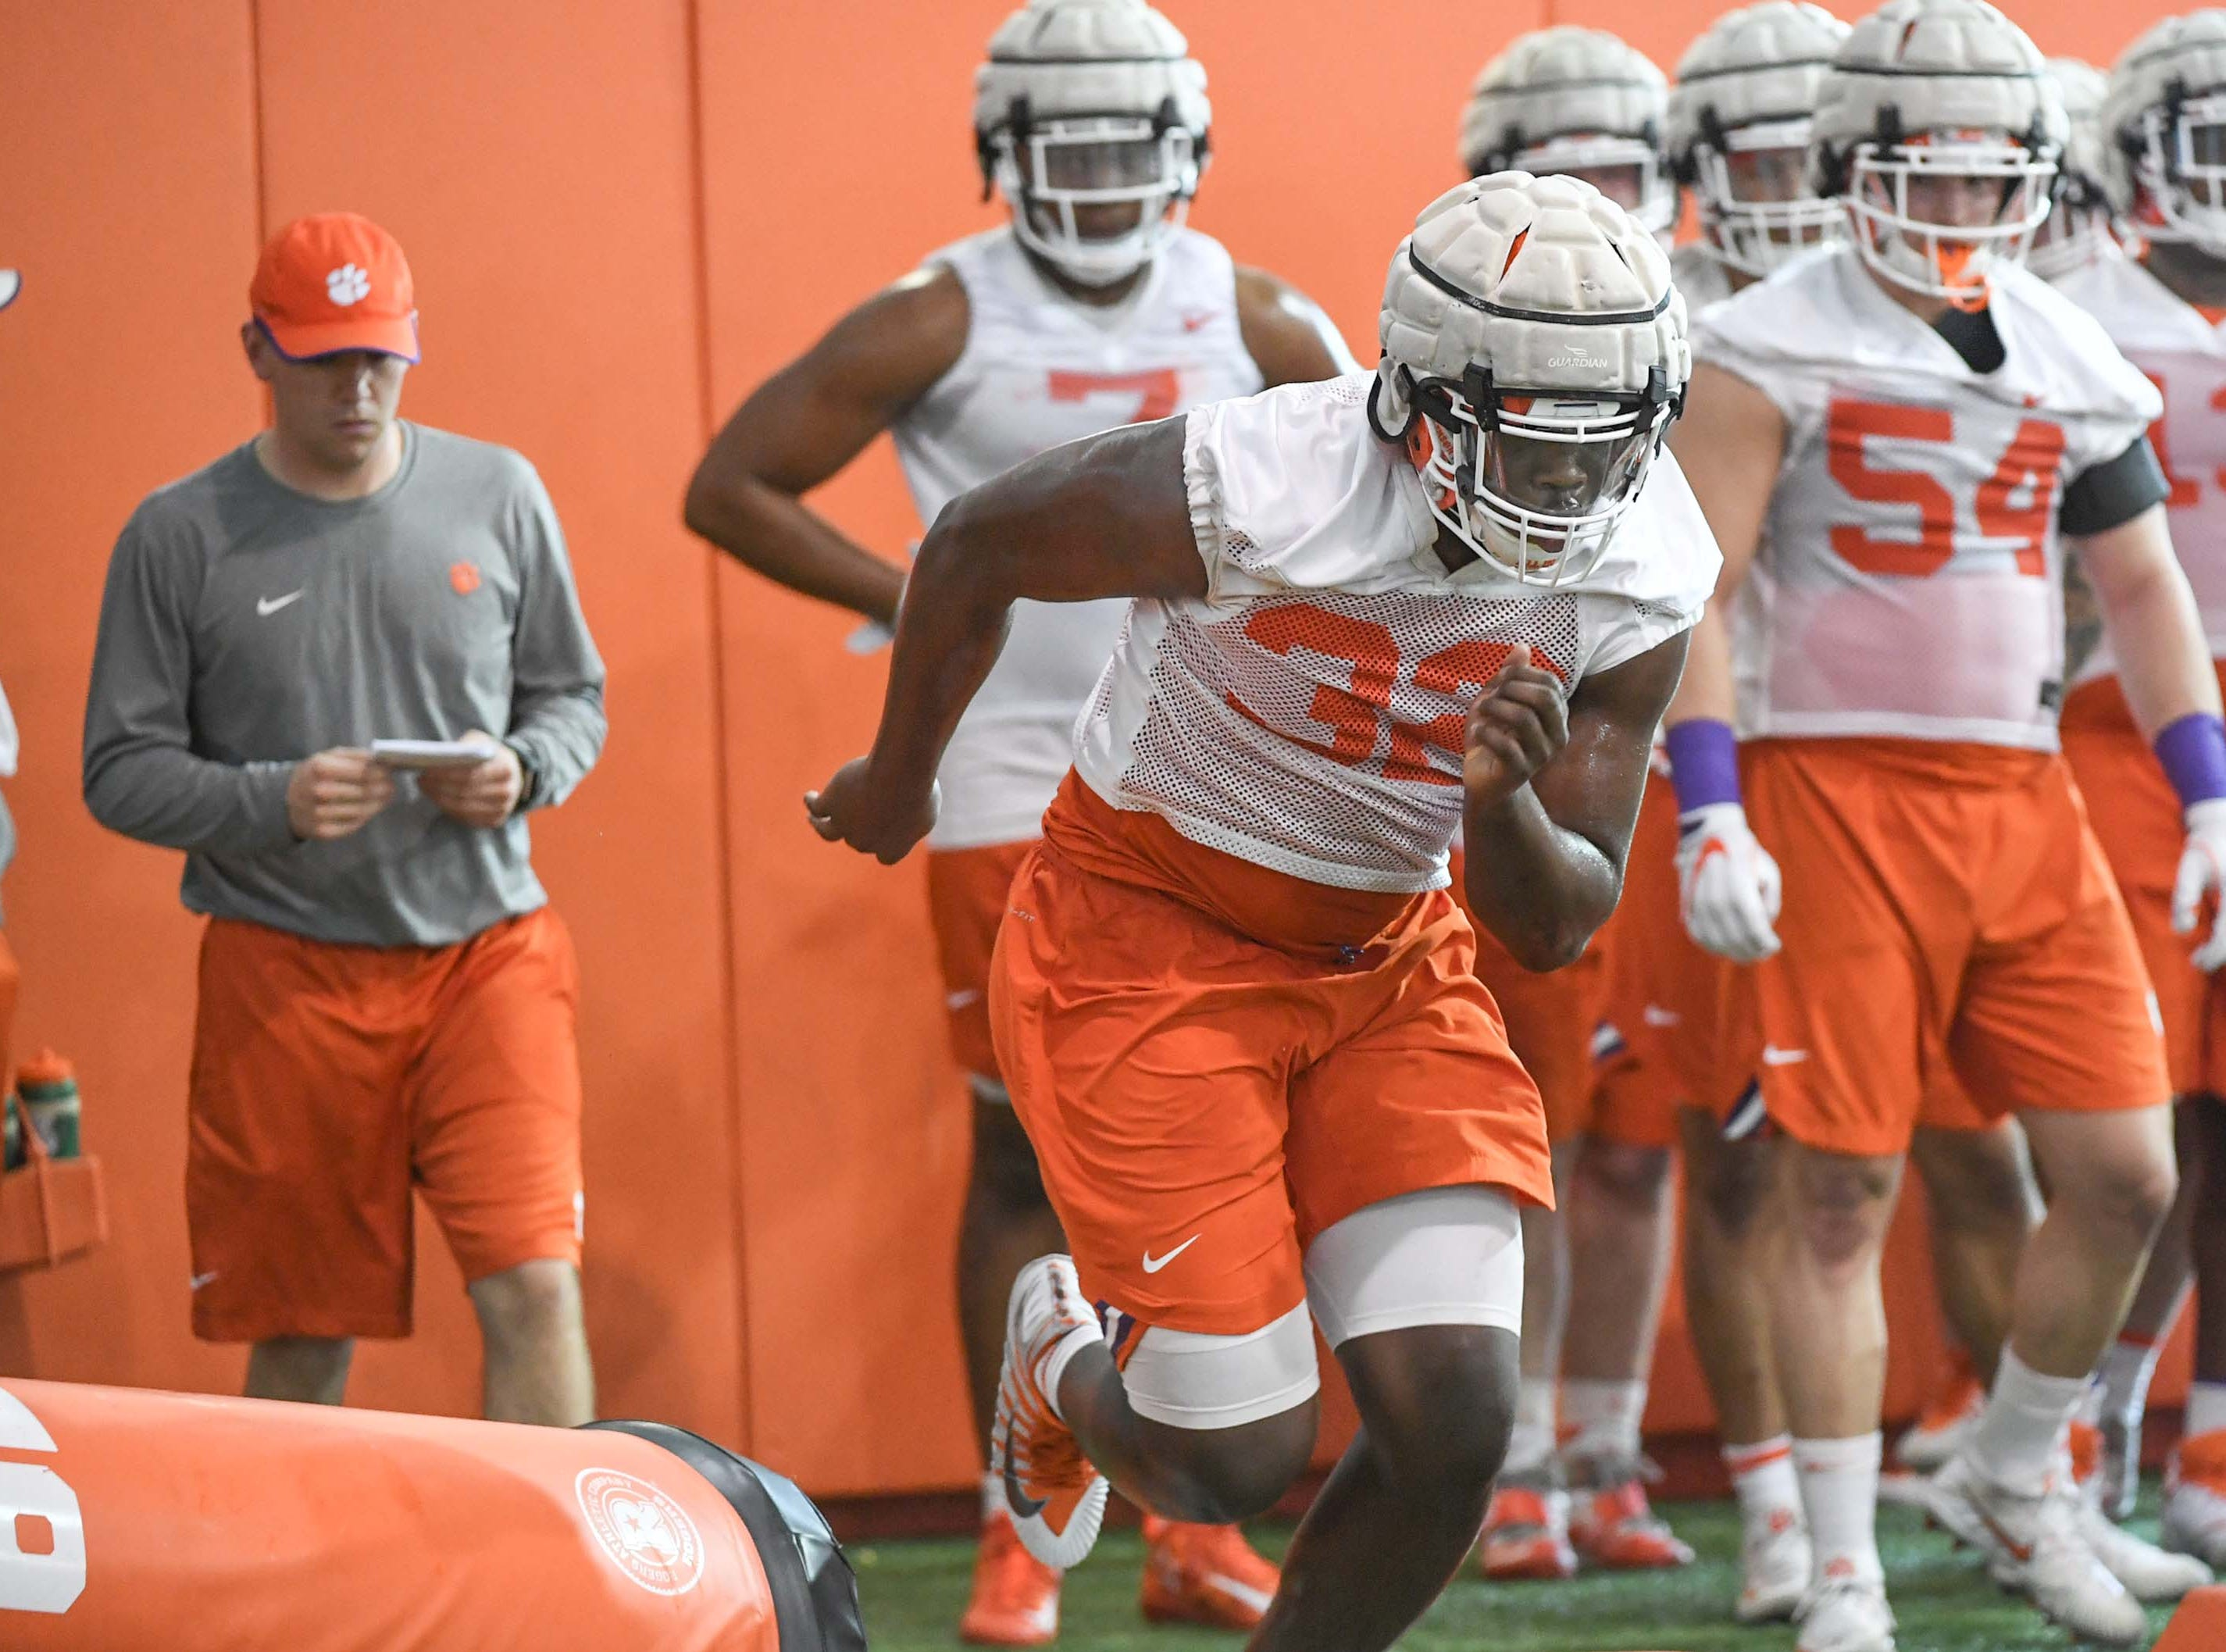 Clemson defensive lineman Etinosa Reuben (32) during the first practice at the Clemson Indoor Practice Facility in Clemson Wednesday, February 27, 2019.